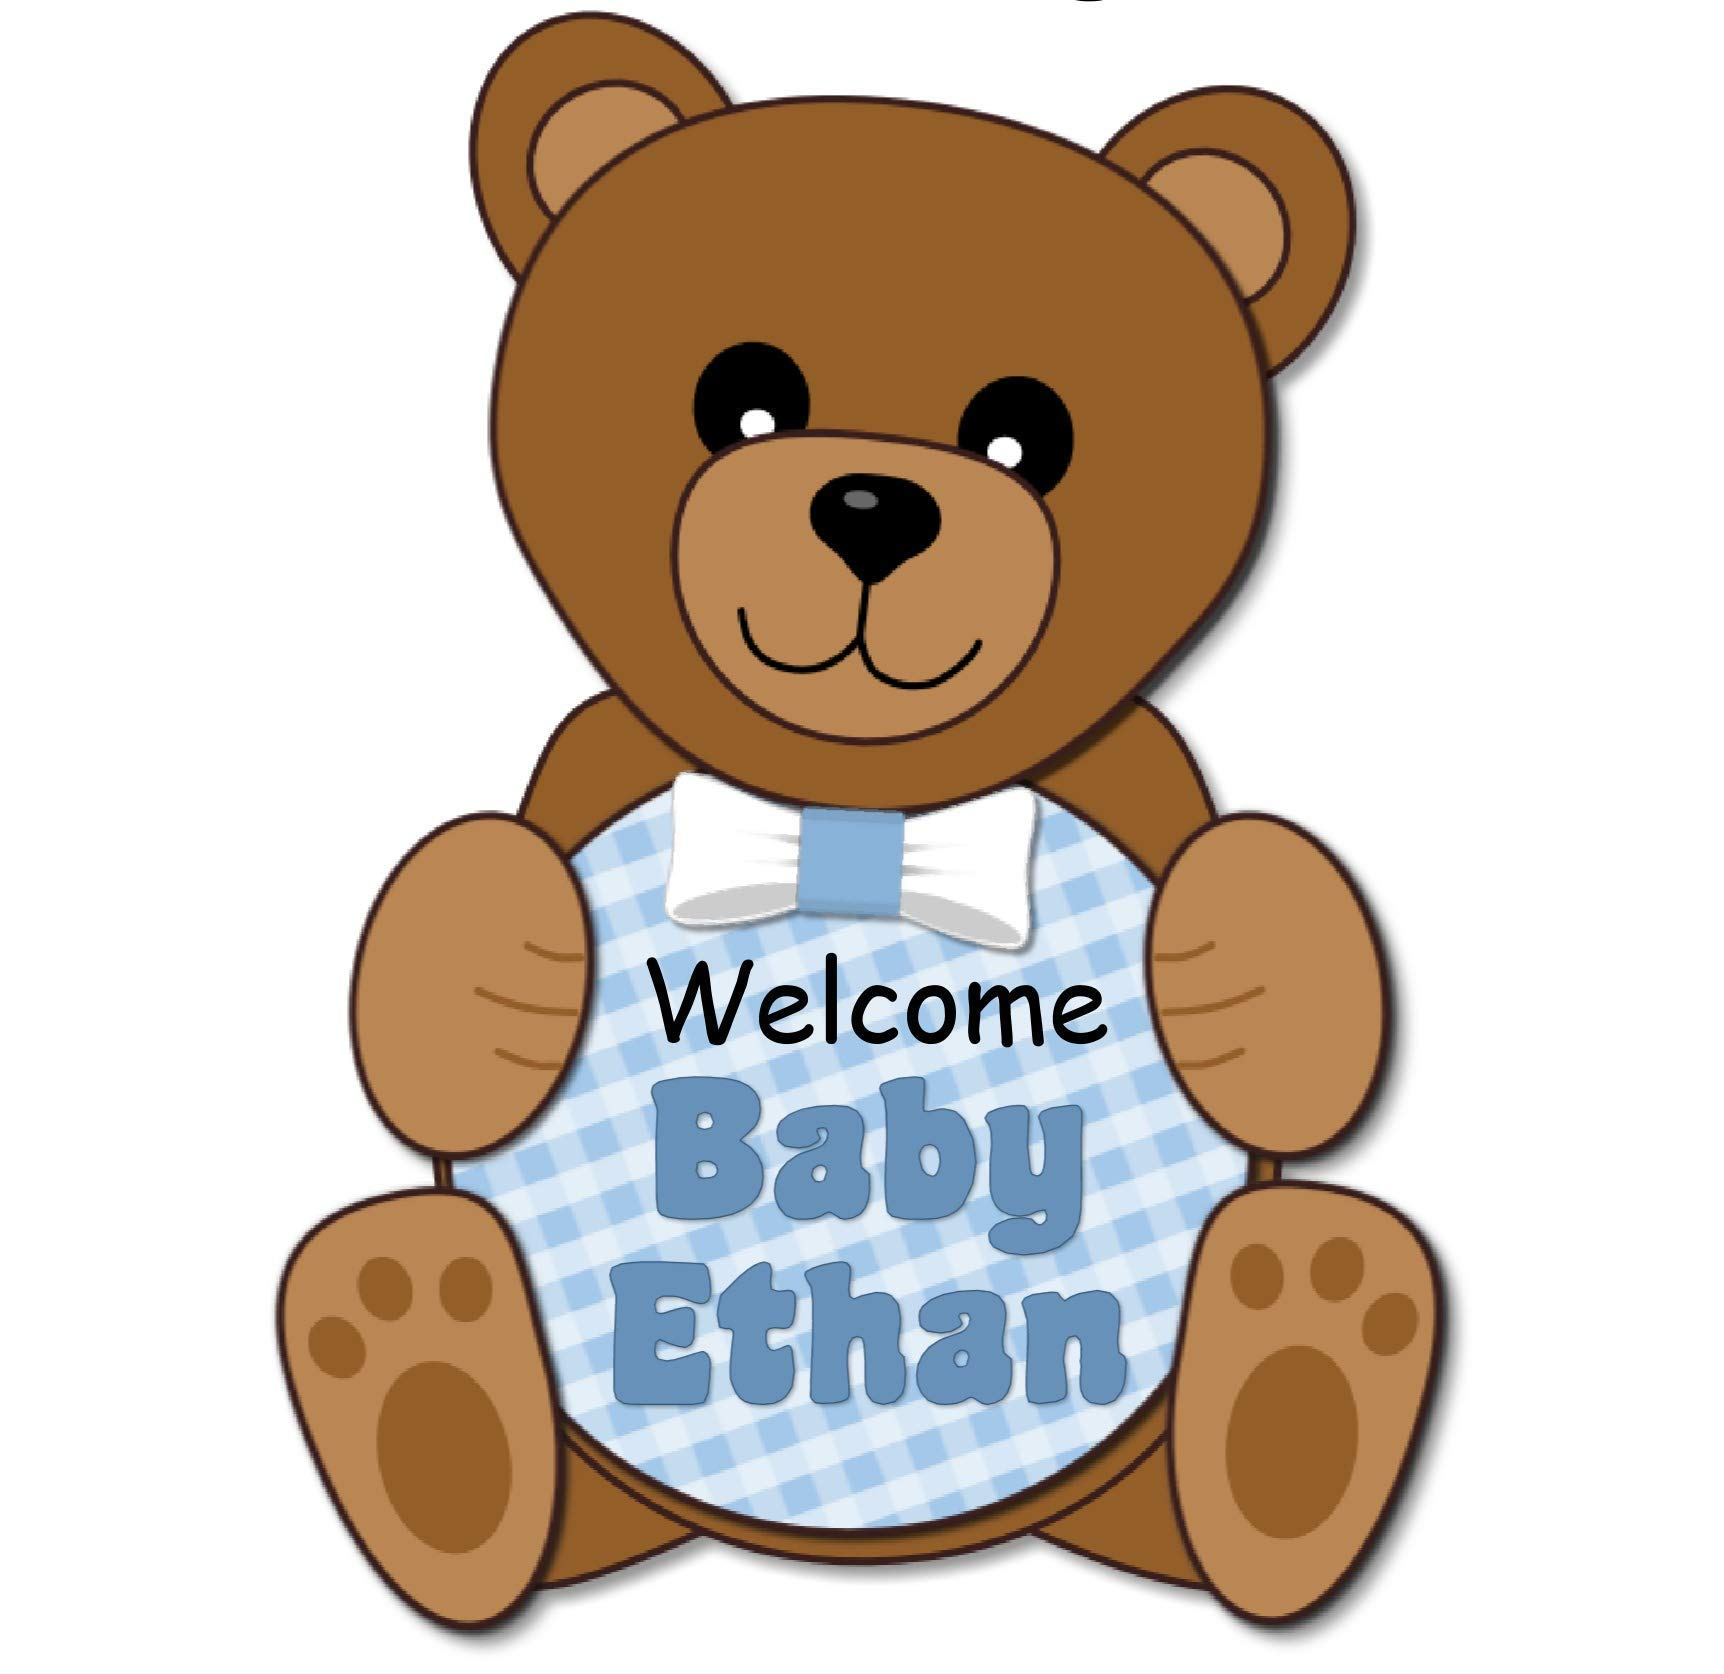 Personalized Teddy Bear Baby Shower Or Birthday Party Welcome Sign For Boy With Optional Decorations Banner Cake Topper Valentines